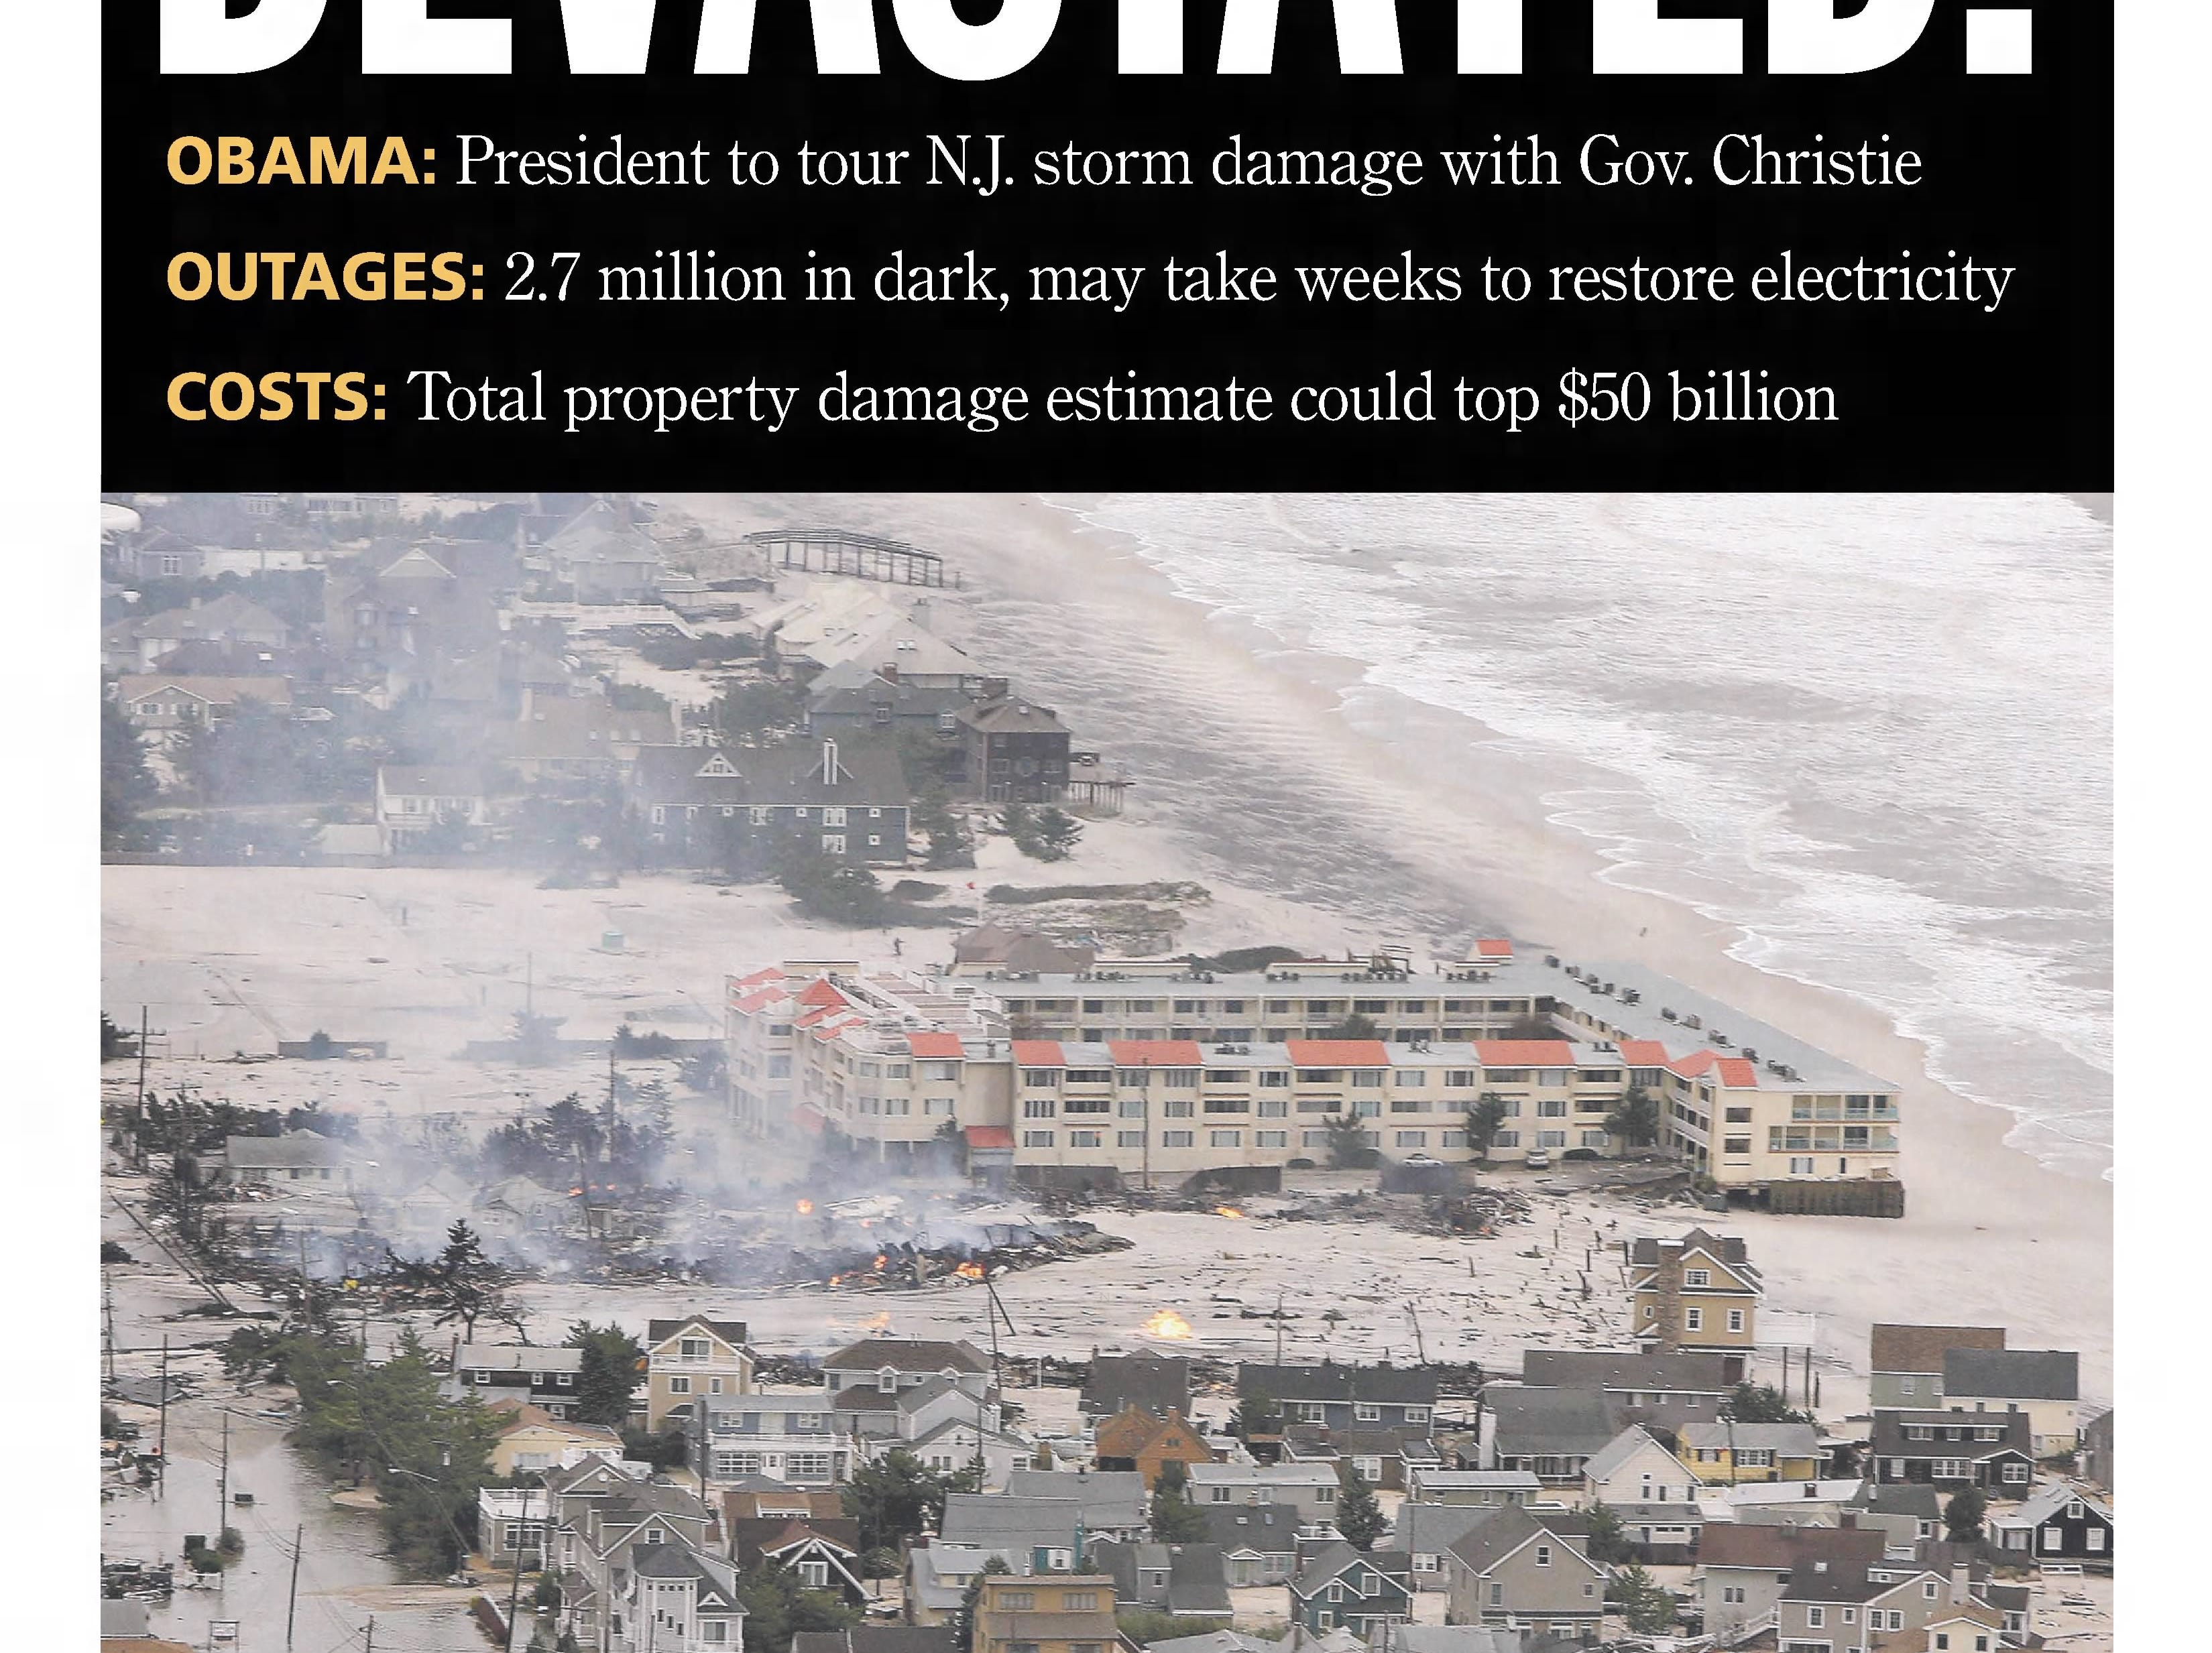 The full devastation of superstorm Sandy becomes increasingly apparent in the days after what is the worst natural disaster at the Jersey Shore in modern history. This edition is from Wednesday, Oct. 31, 2012.